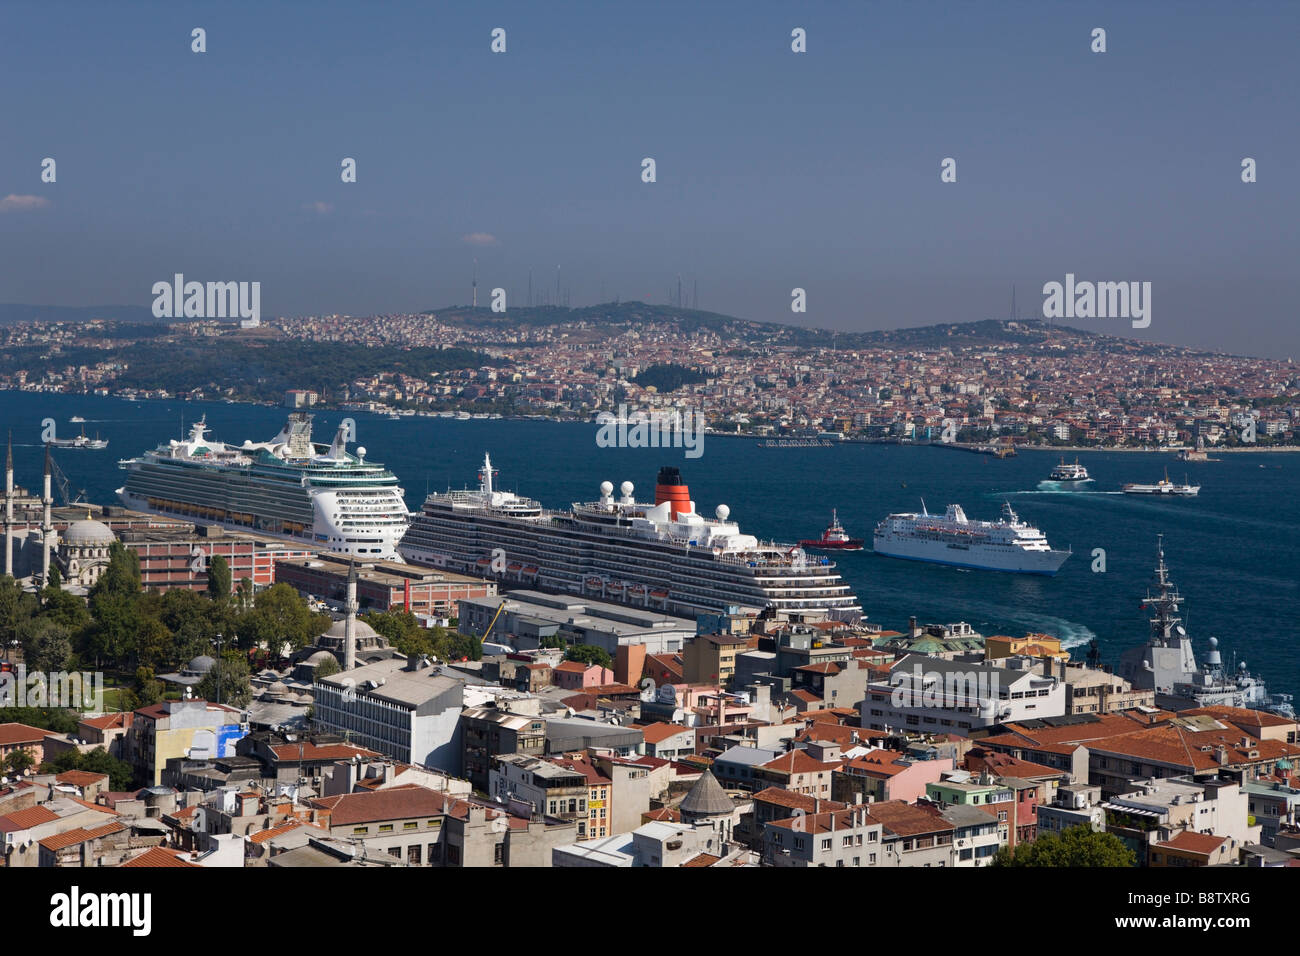 View from Galata Tower to Bosporus and Asien Continent Istanbul Turkey - Stock Image